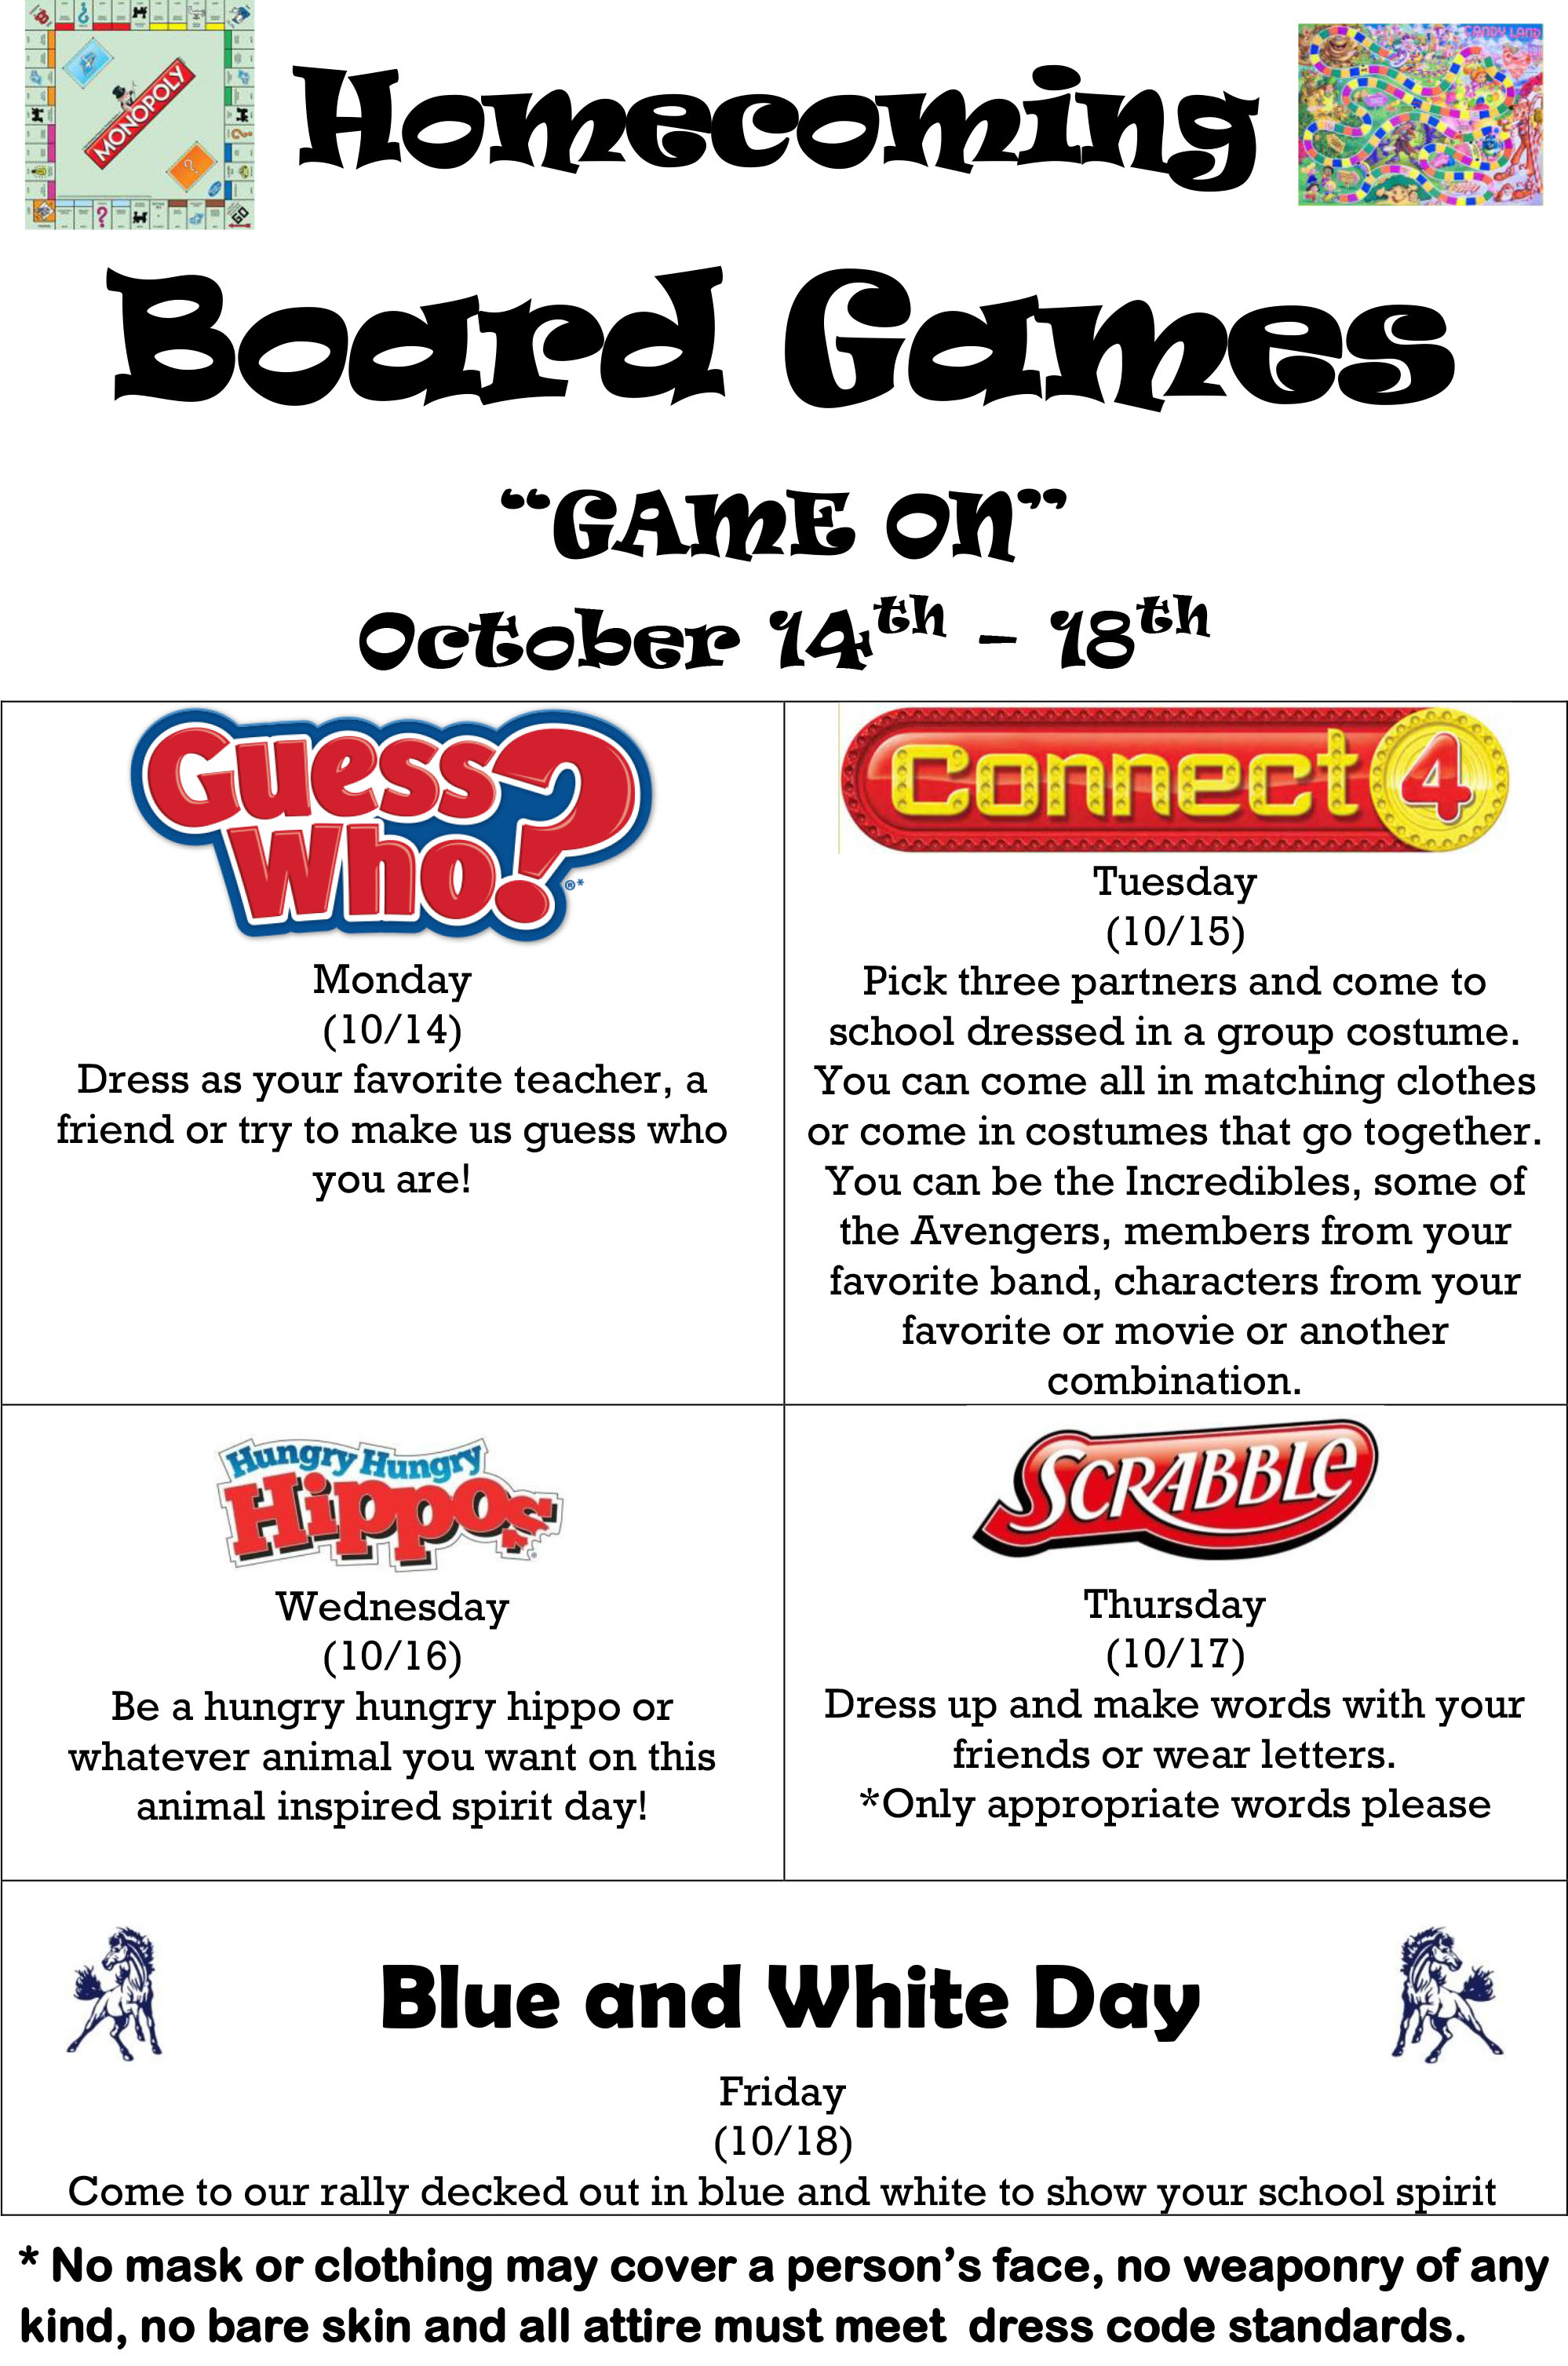 Homecoming Board Games Game On October 14 - 118